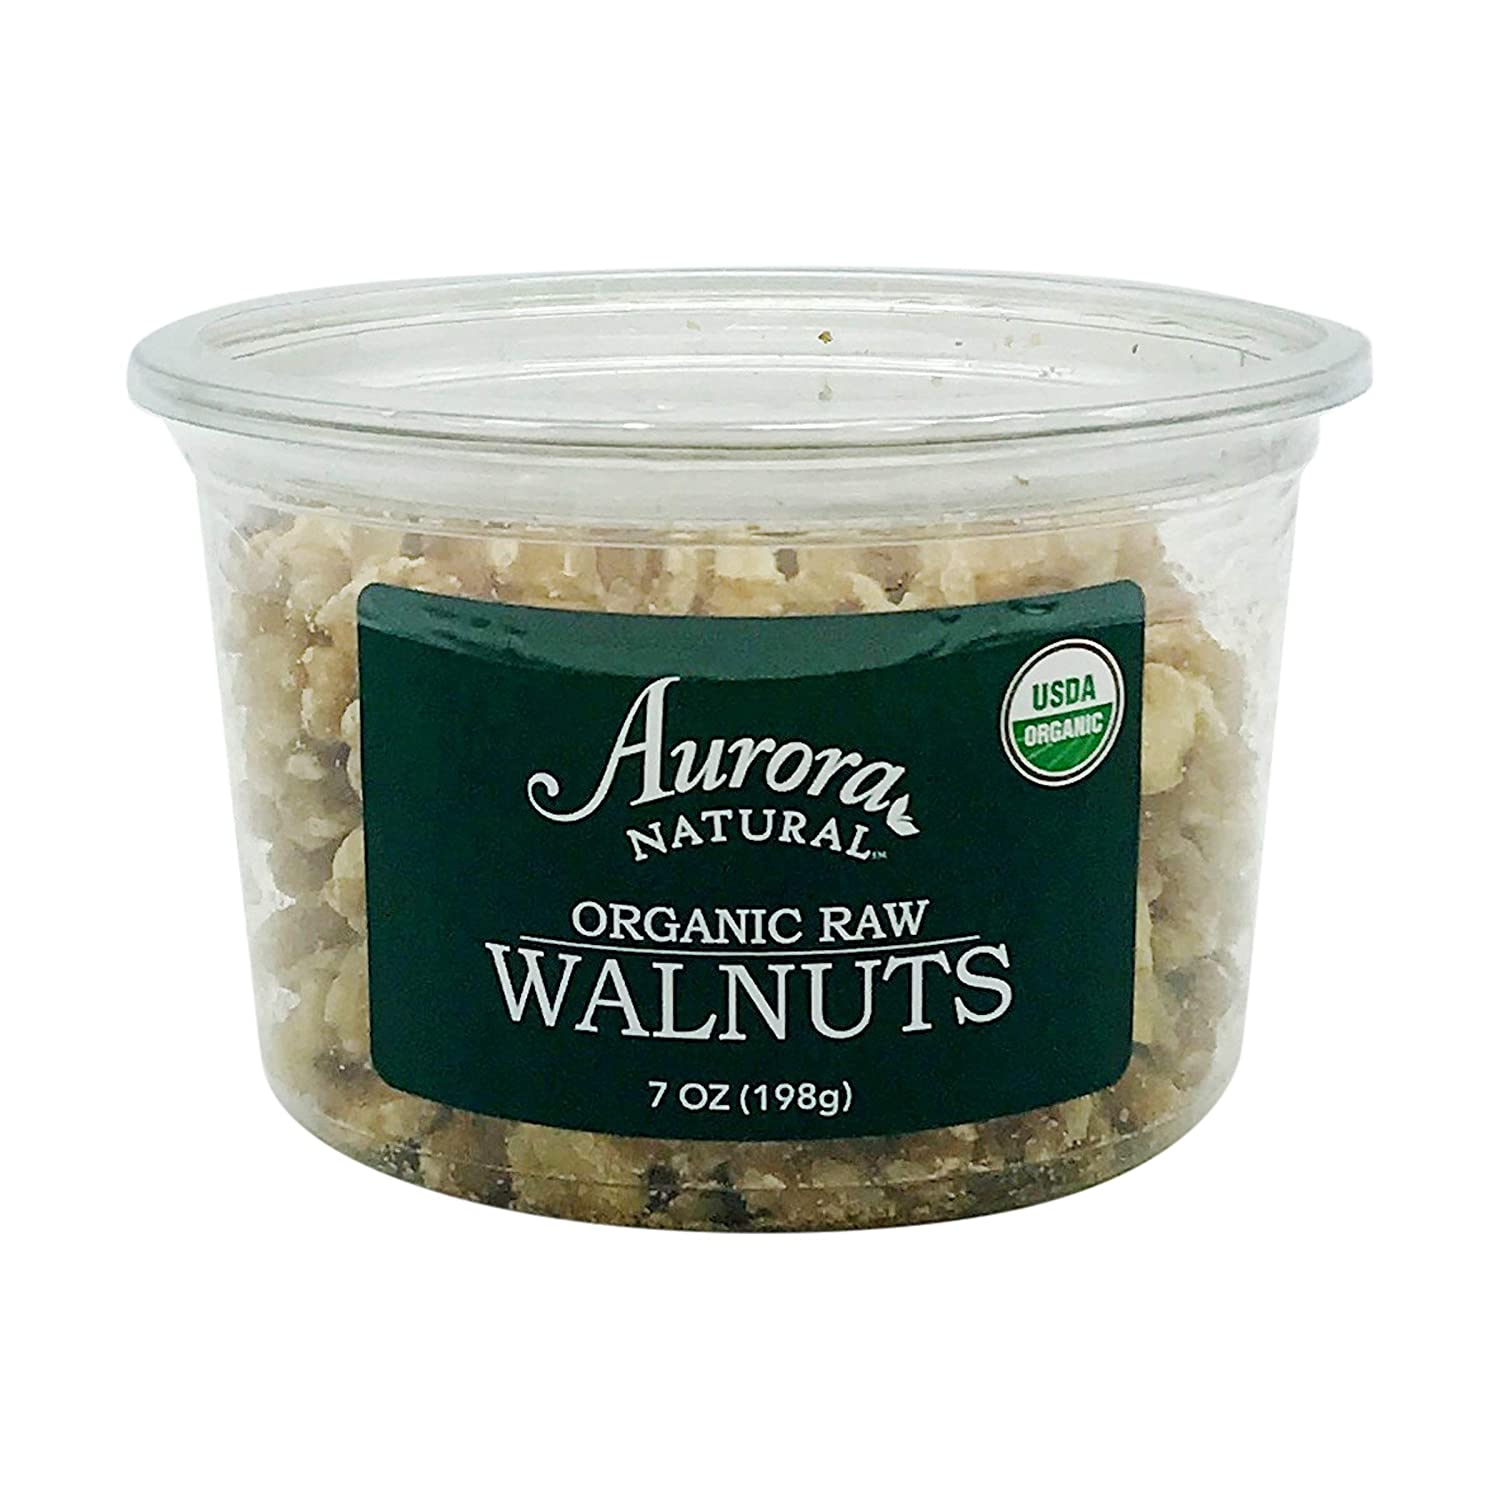 Easy-to-use Aurora Products Organic Walnut New mail order oz 7 Halves